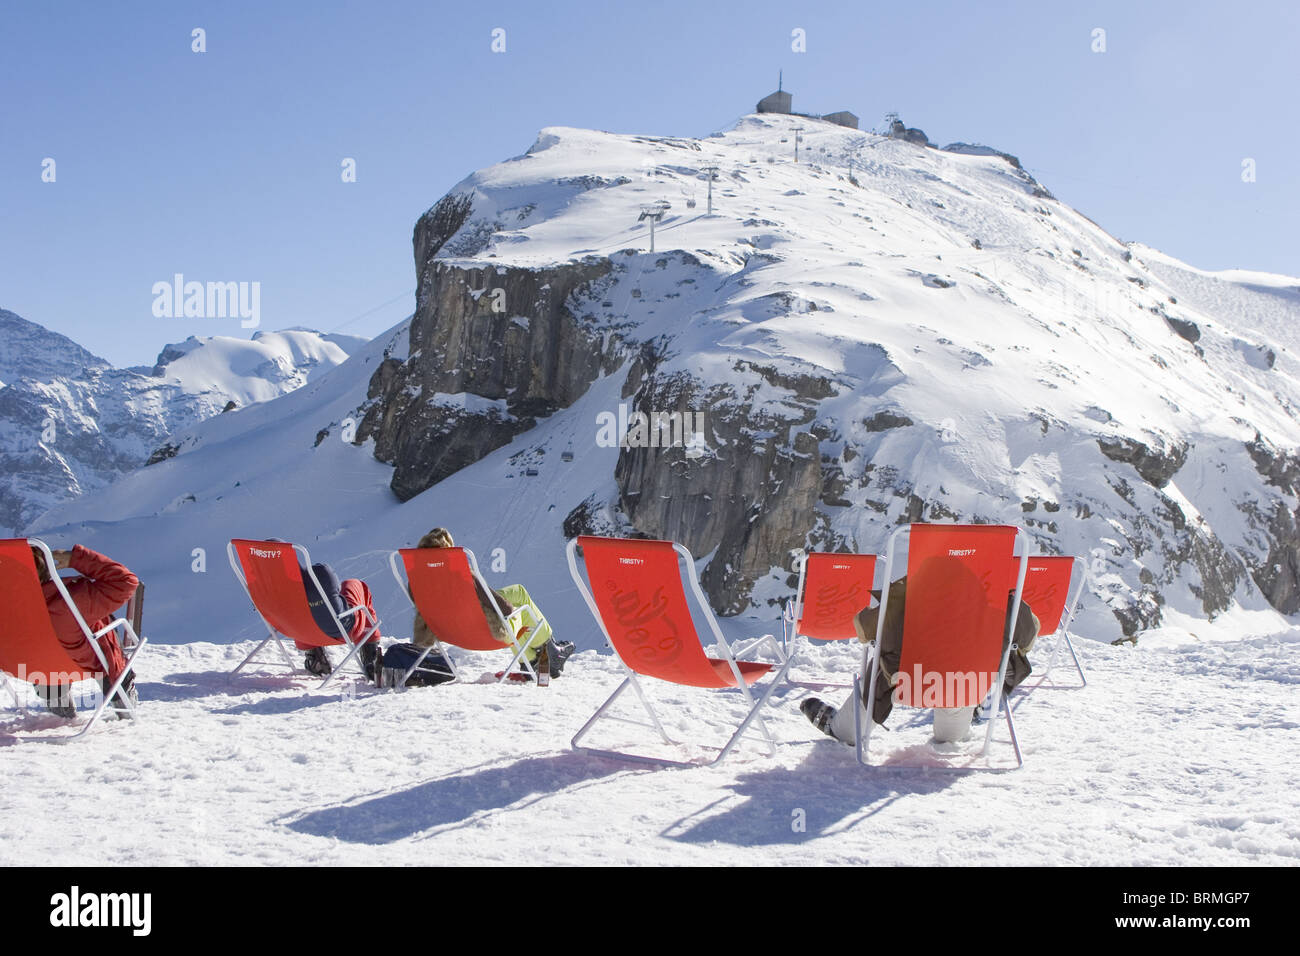 Sunbathing Chairs Swiss Alps Ski Resort Jungfrauregion Sunbathing Chairs In